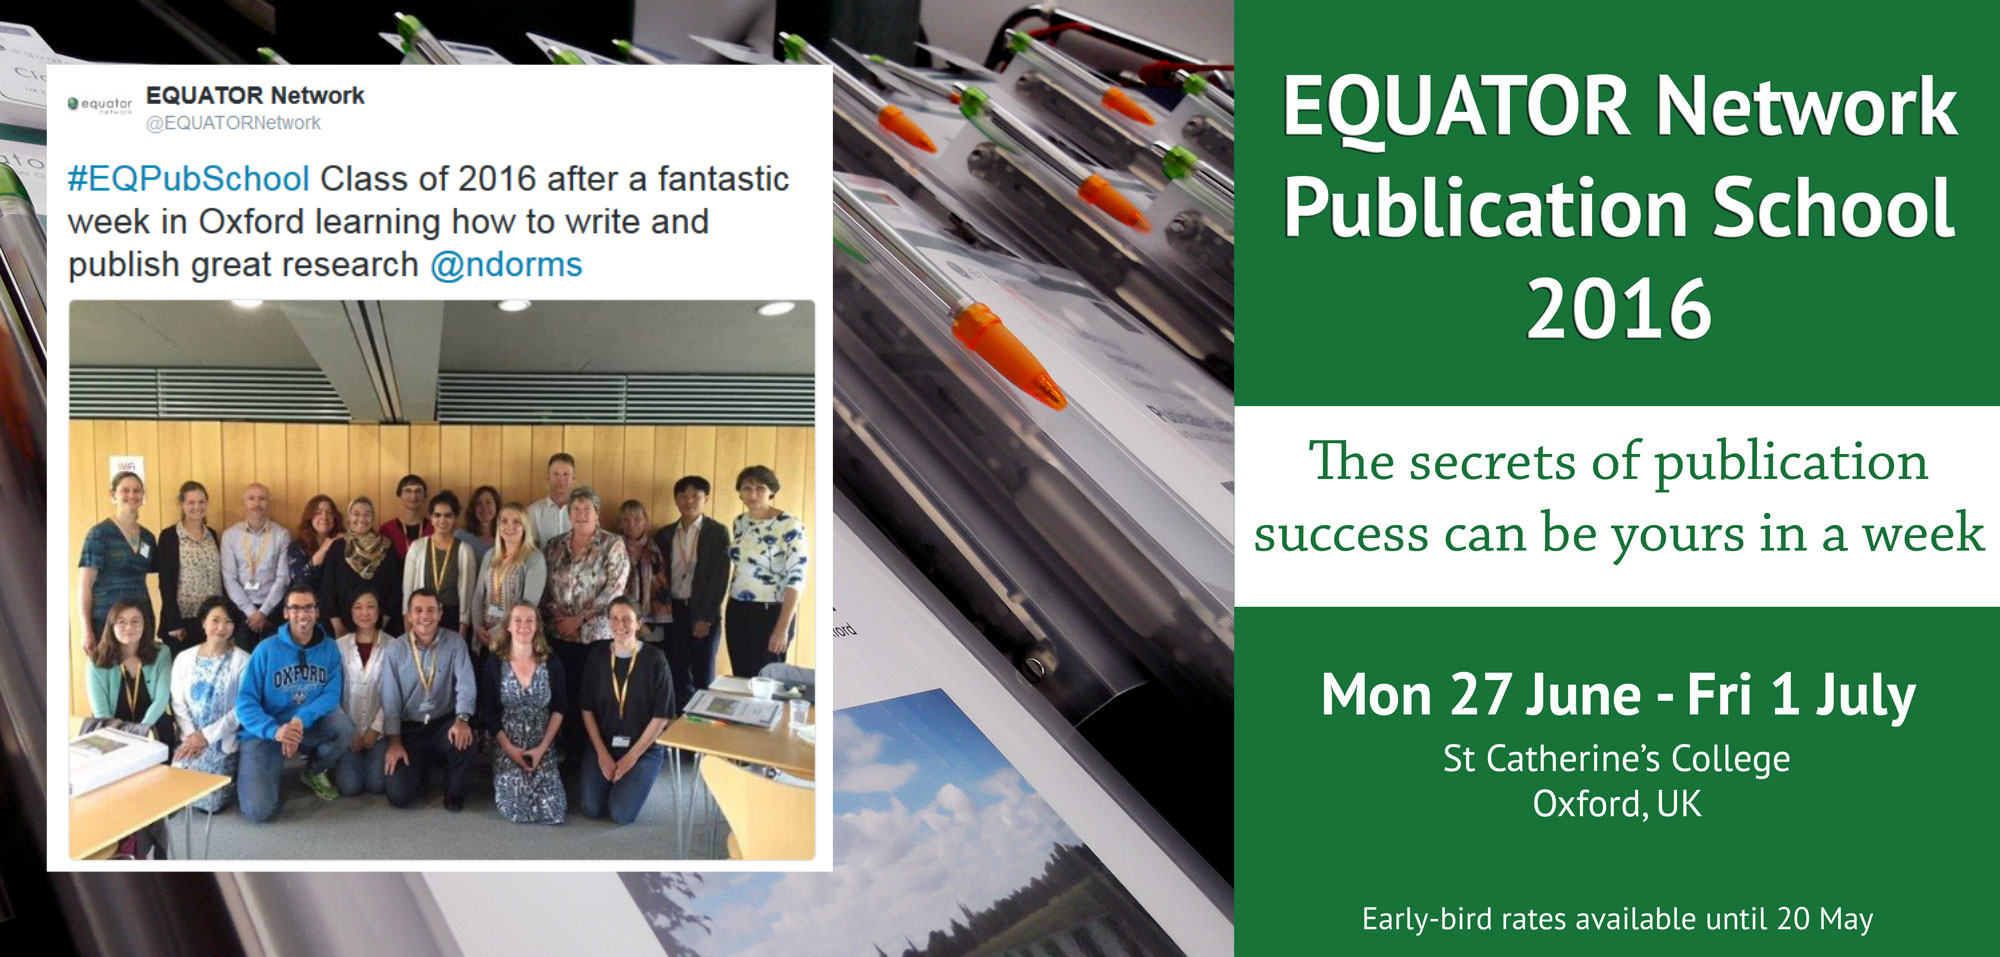 EQUATOR Network Publication School 2016 attendees